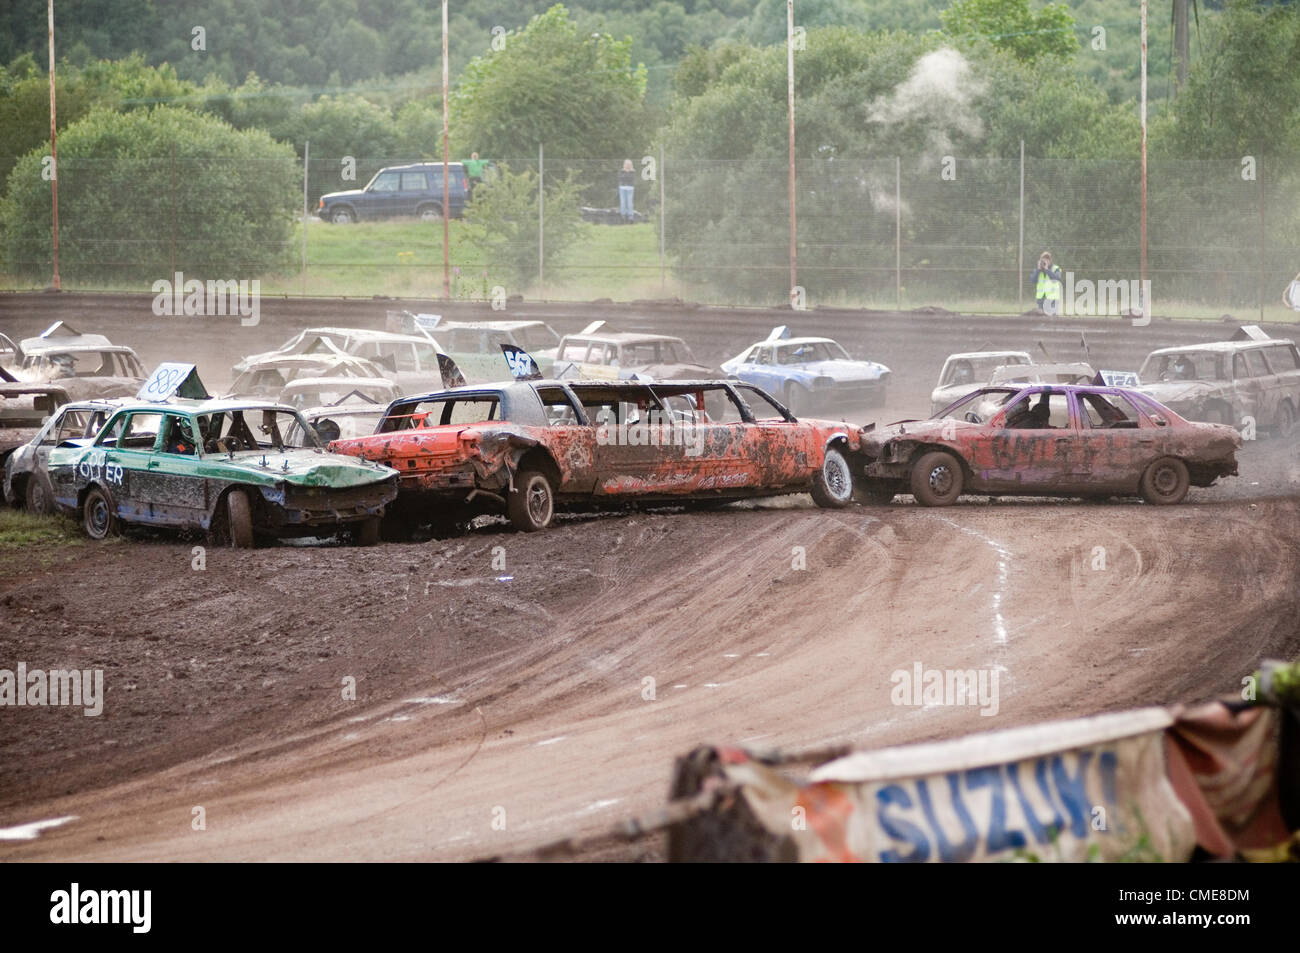 banger race racing crash sequence track stock cars car crashes limo limousine side swipe races scrap junk old